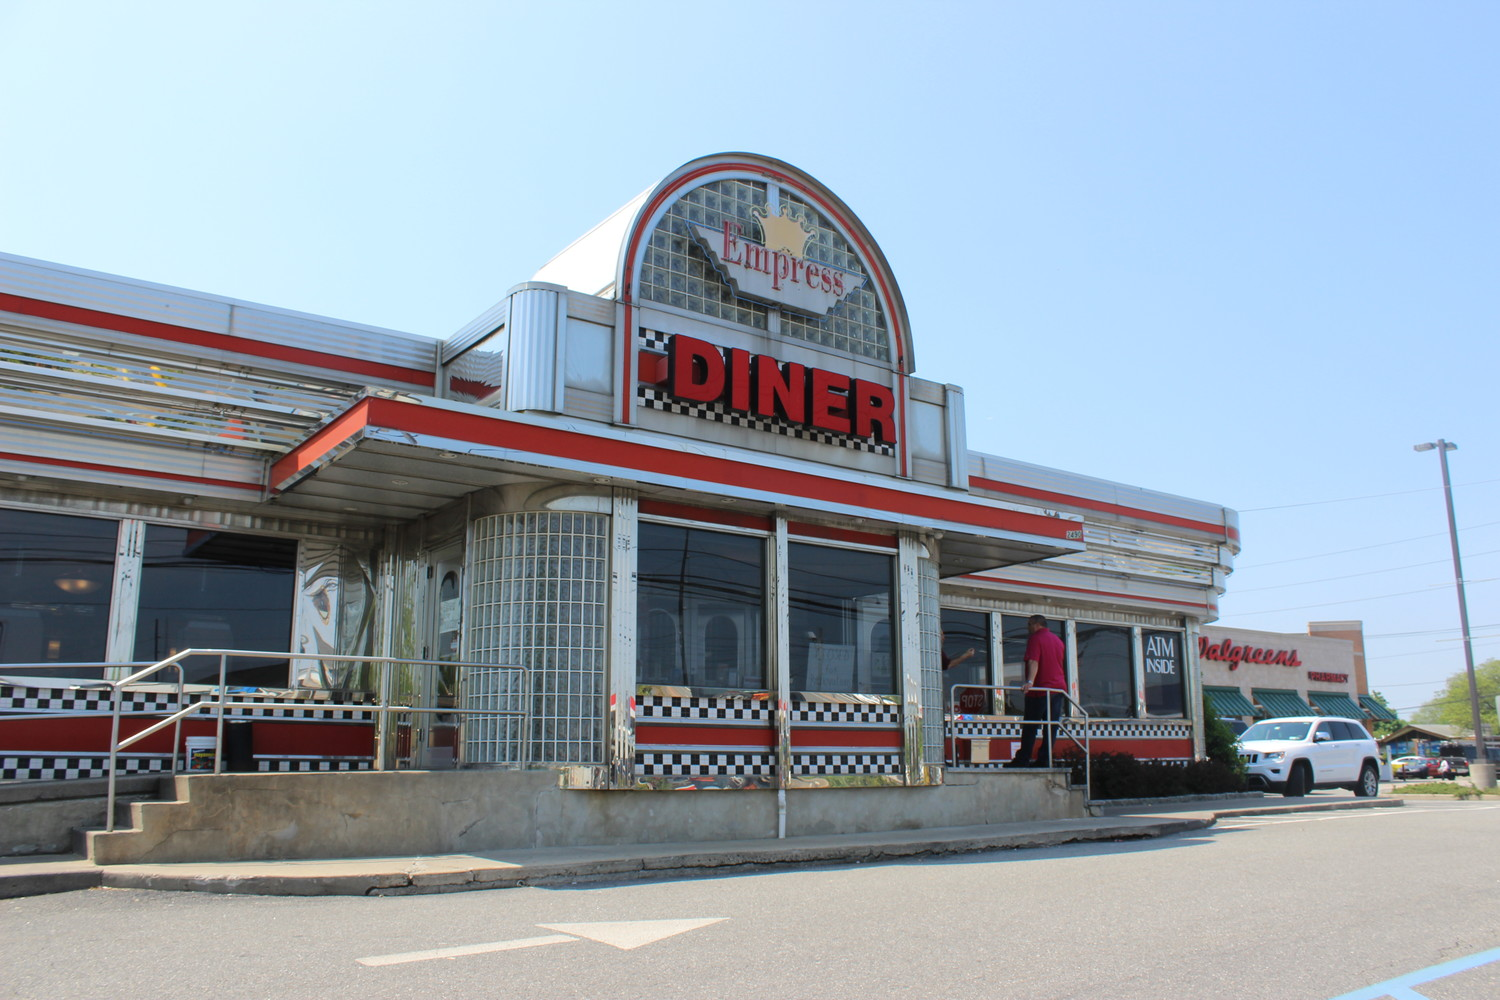 The Empress Diner is temporarily closed for renovations as its new owners prepare to take over.